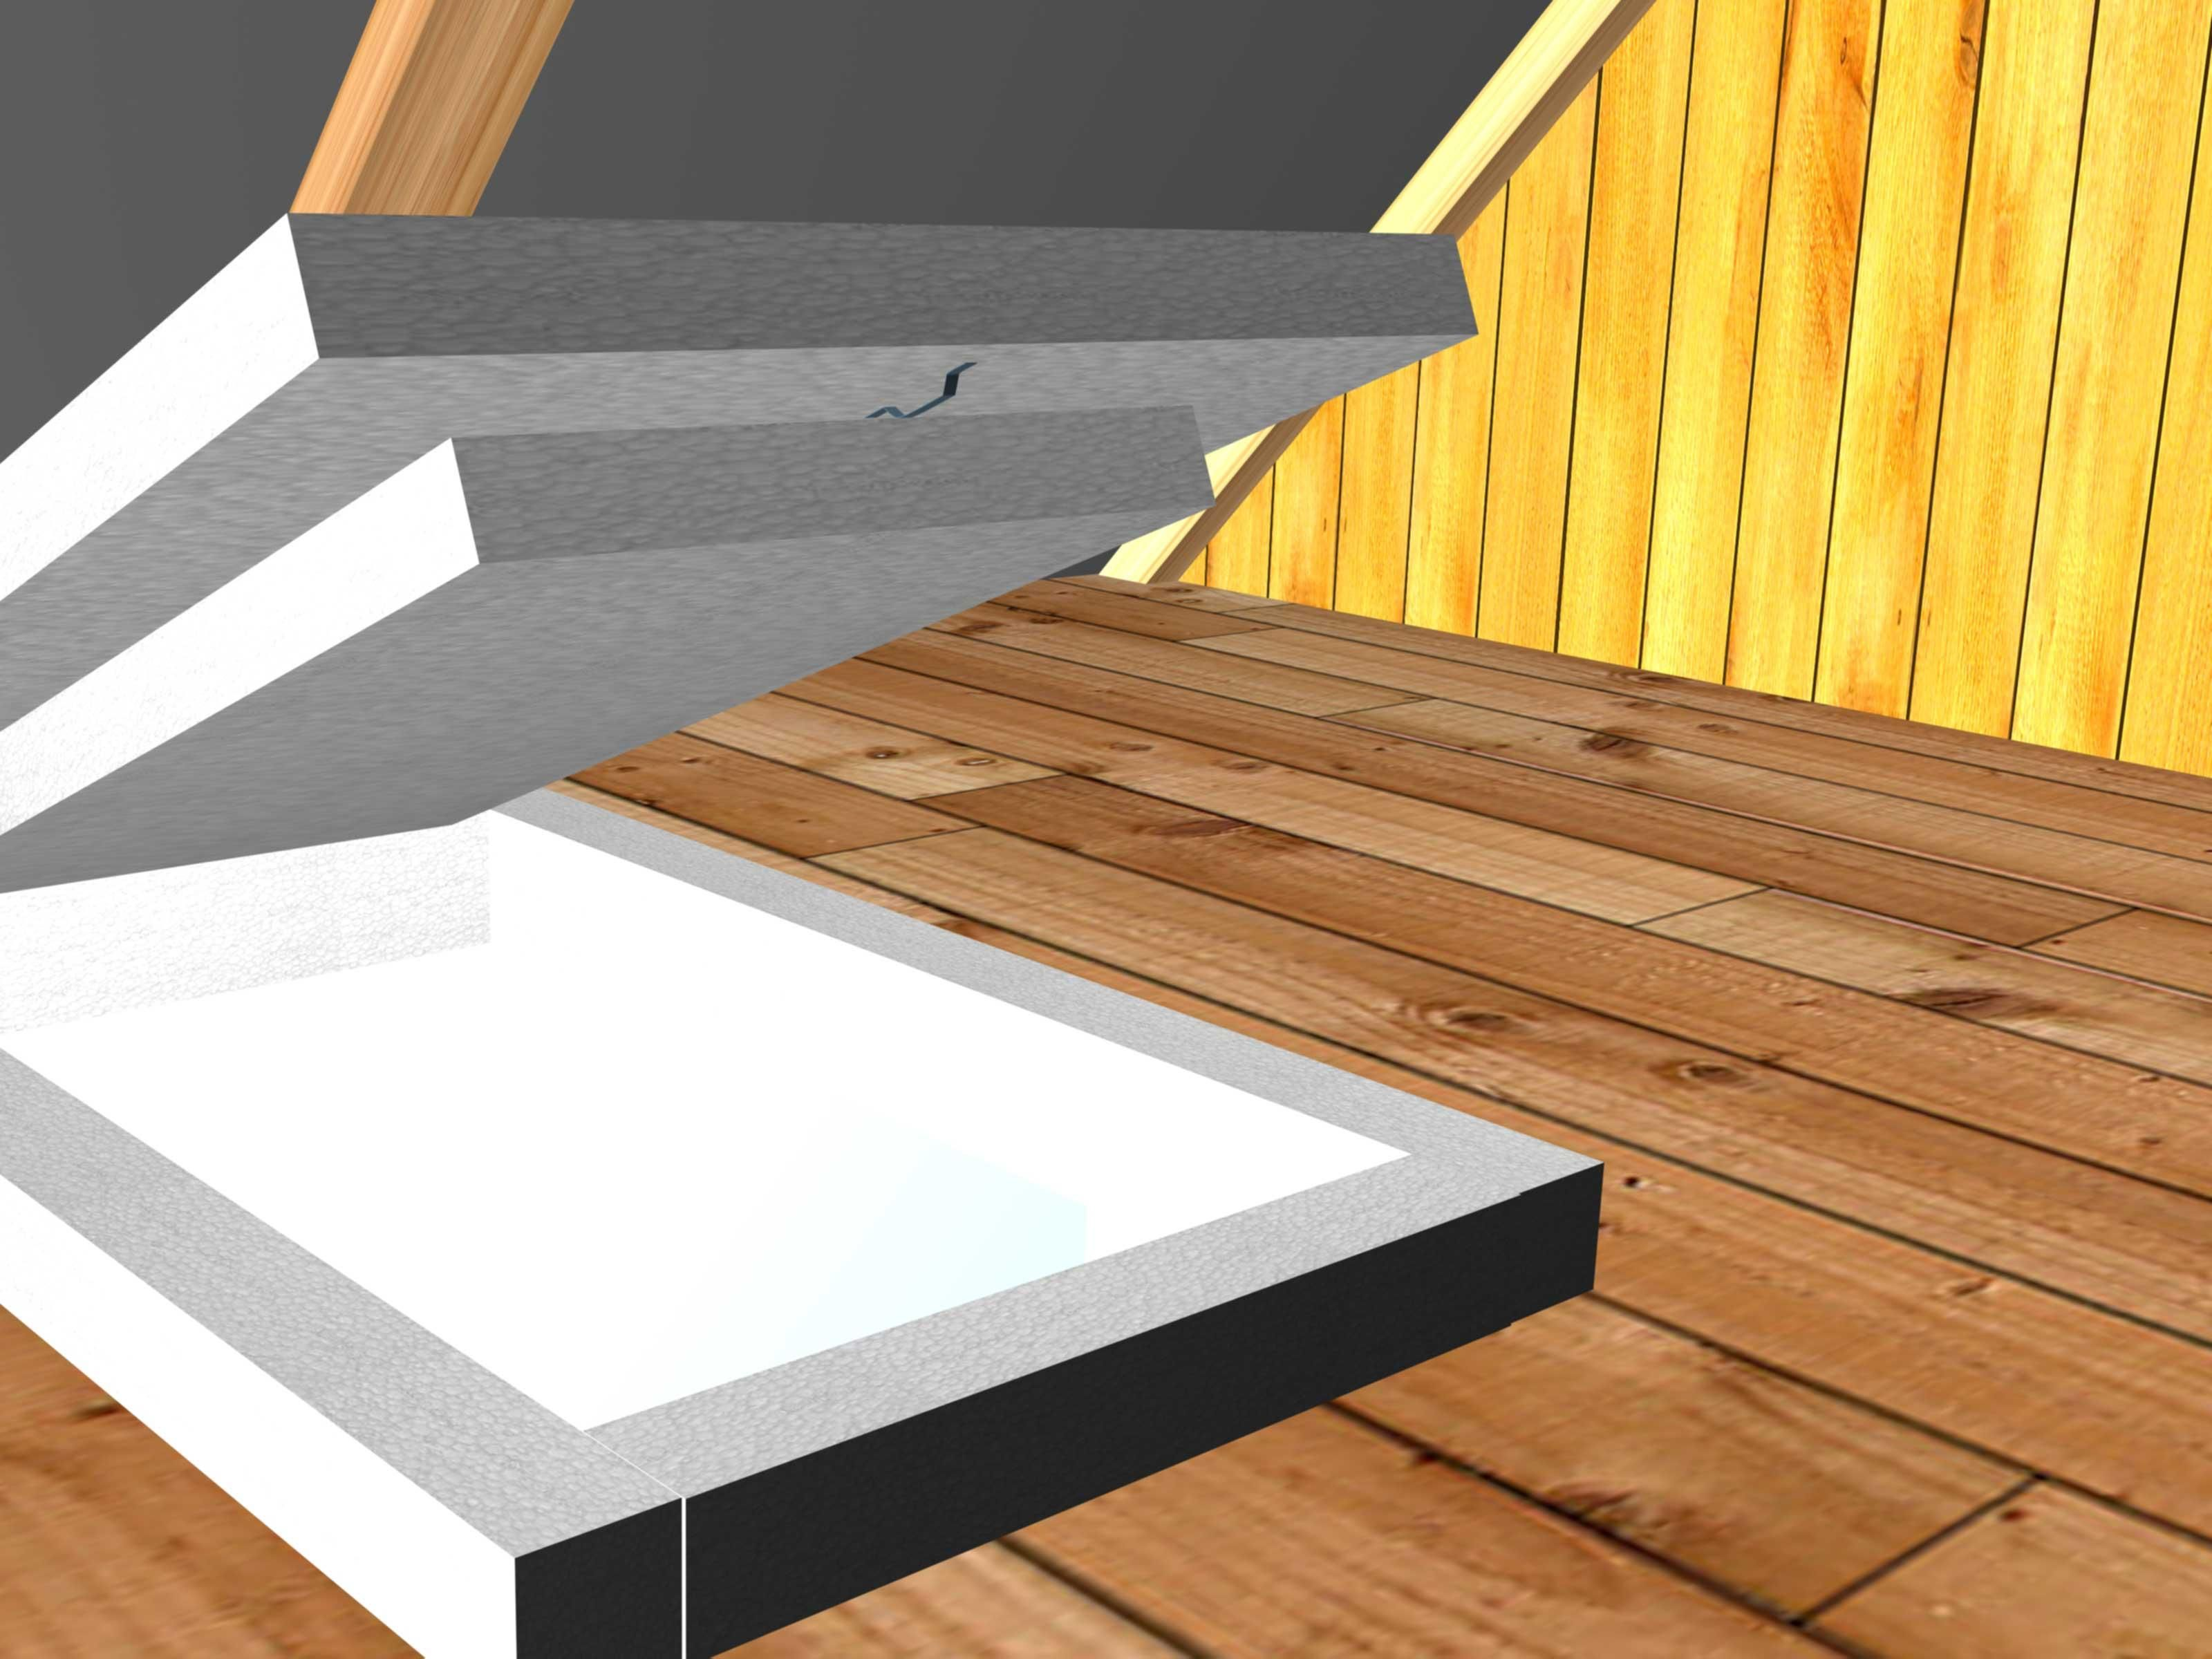 Furniture And Accessories Insulate An Attic Door Step How To Insulate Attic Access Insulating Attic Stairs Open Door Attic Bedrooms With Built Ins Attic Stairs